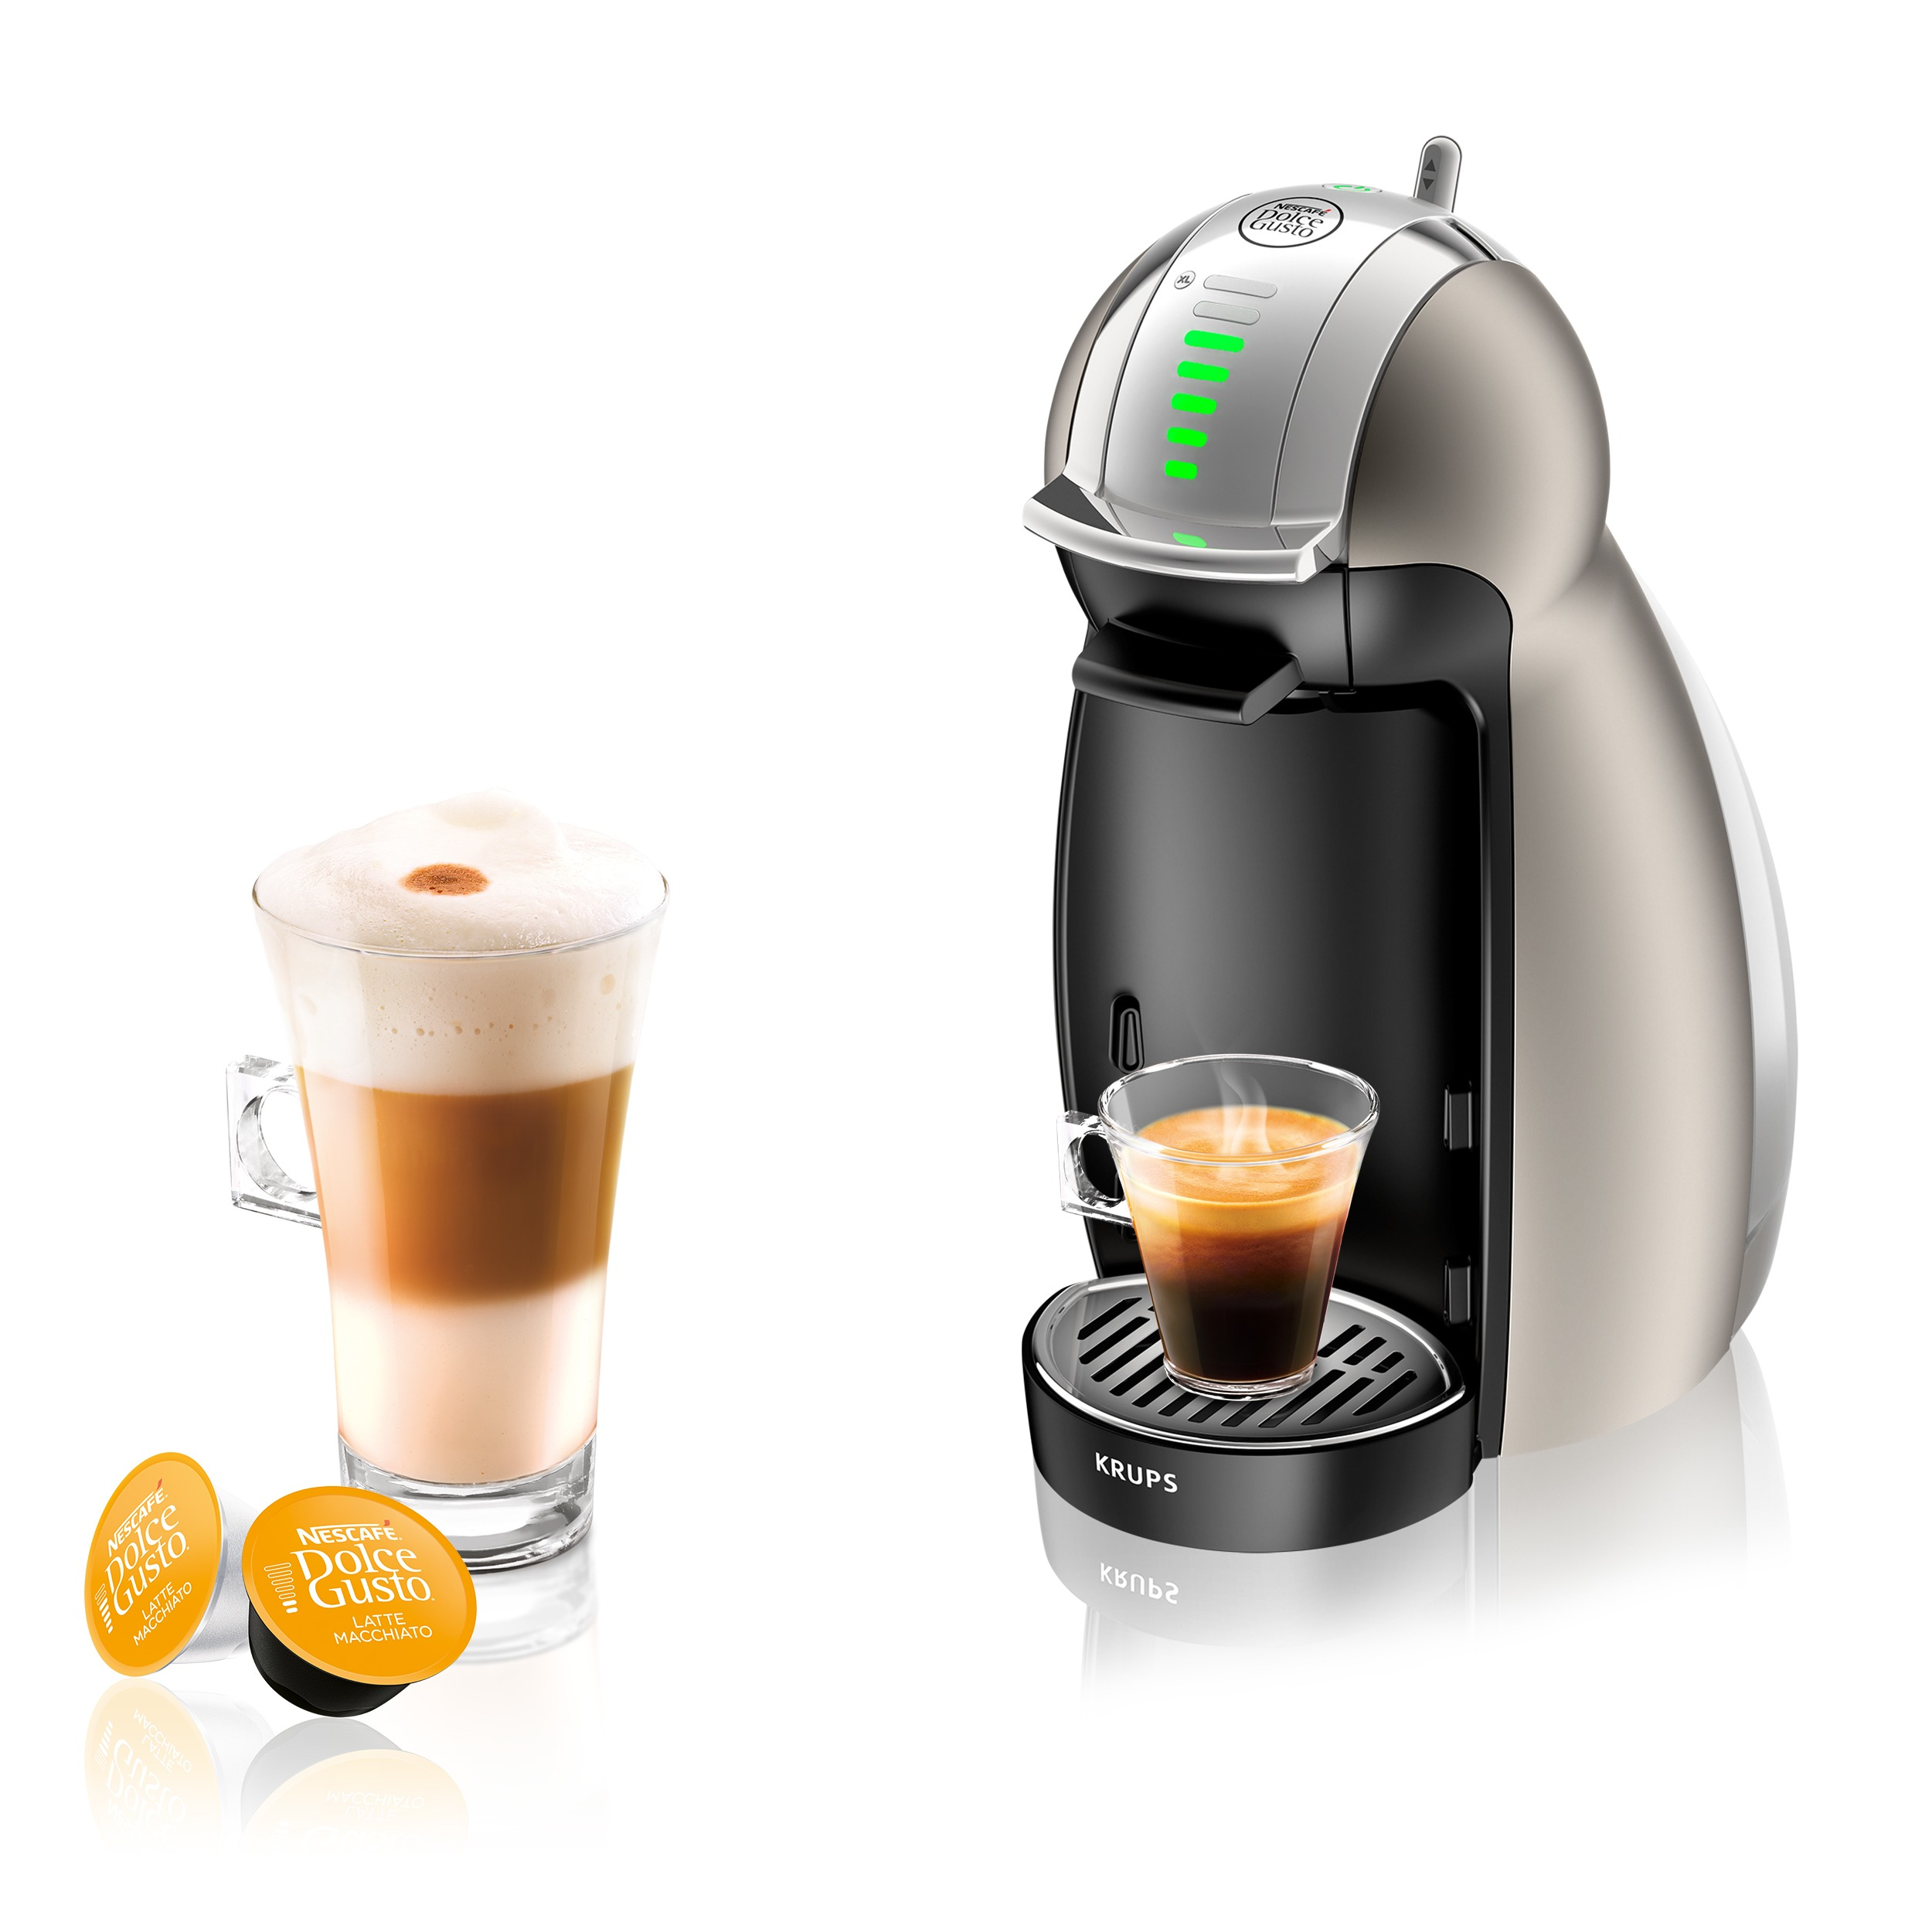 Krups Dolce Gusto Genio 2 KP160T